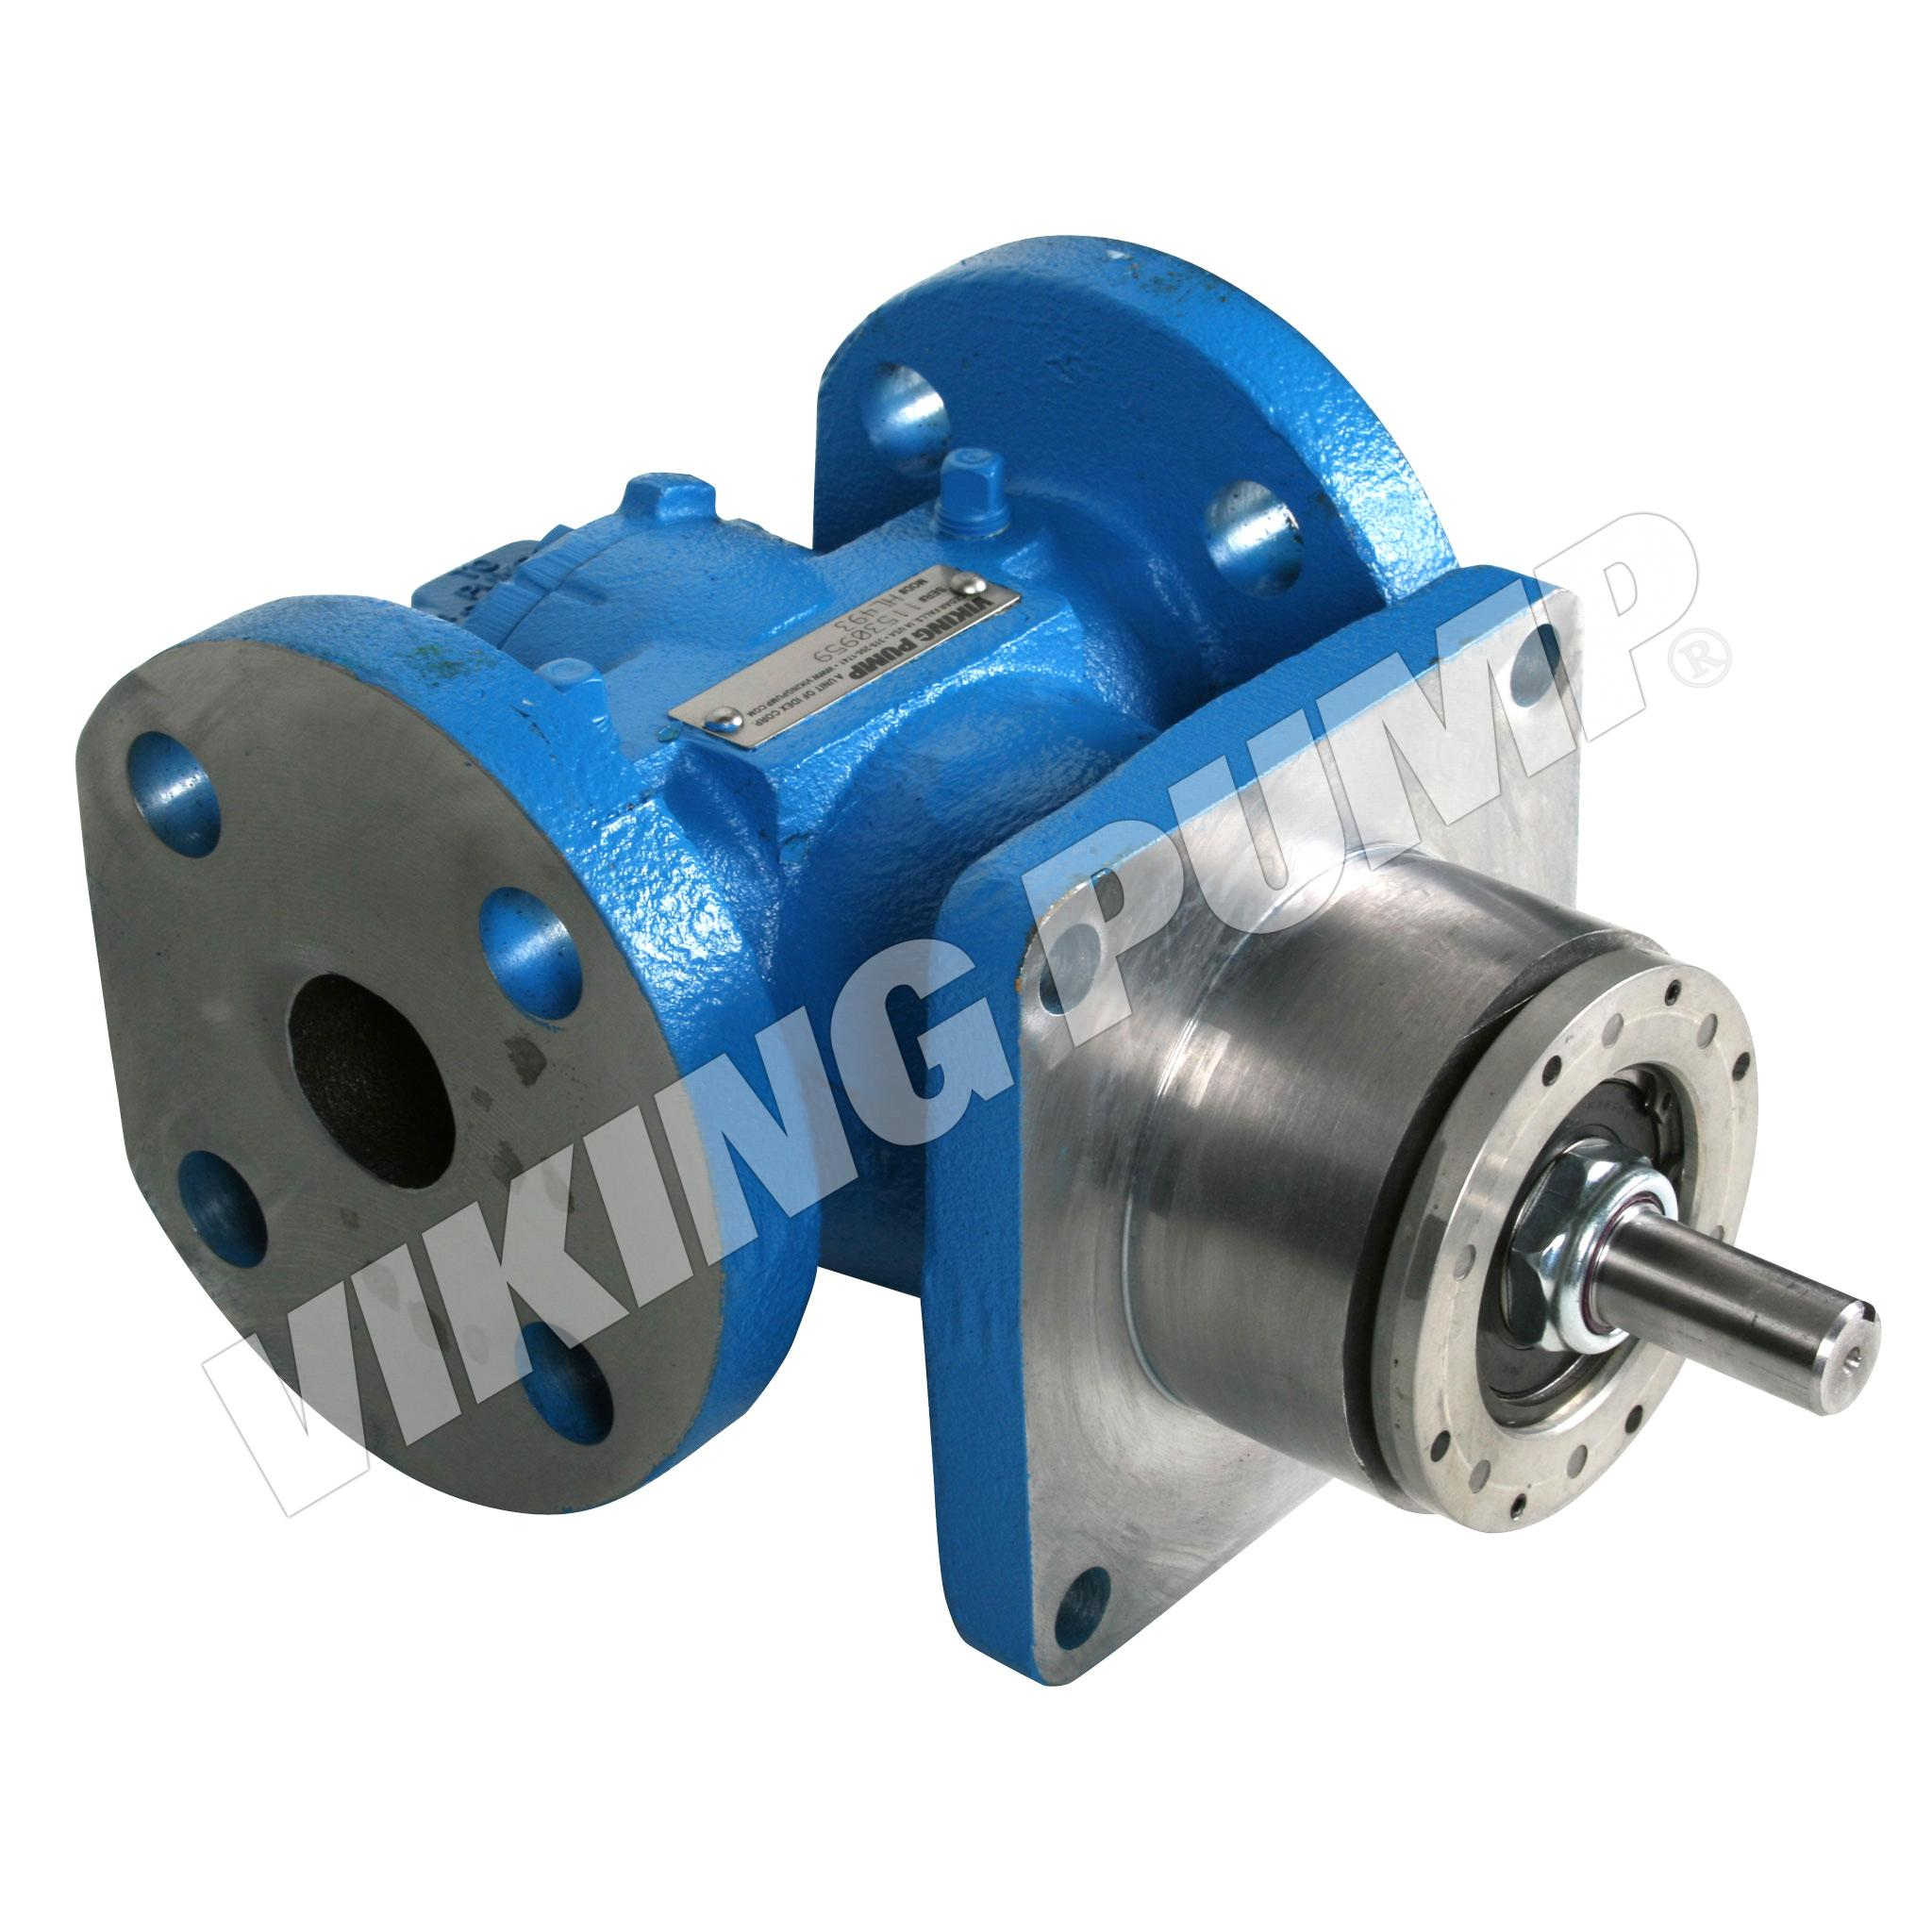 Model HL493, Unmounted, Mechanical Seal, Relief Valve Pump